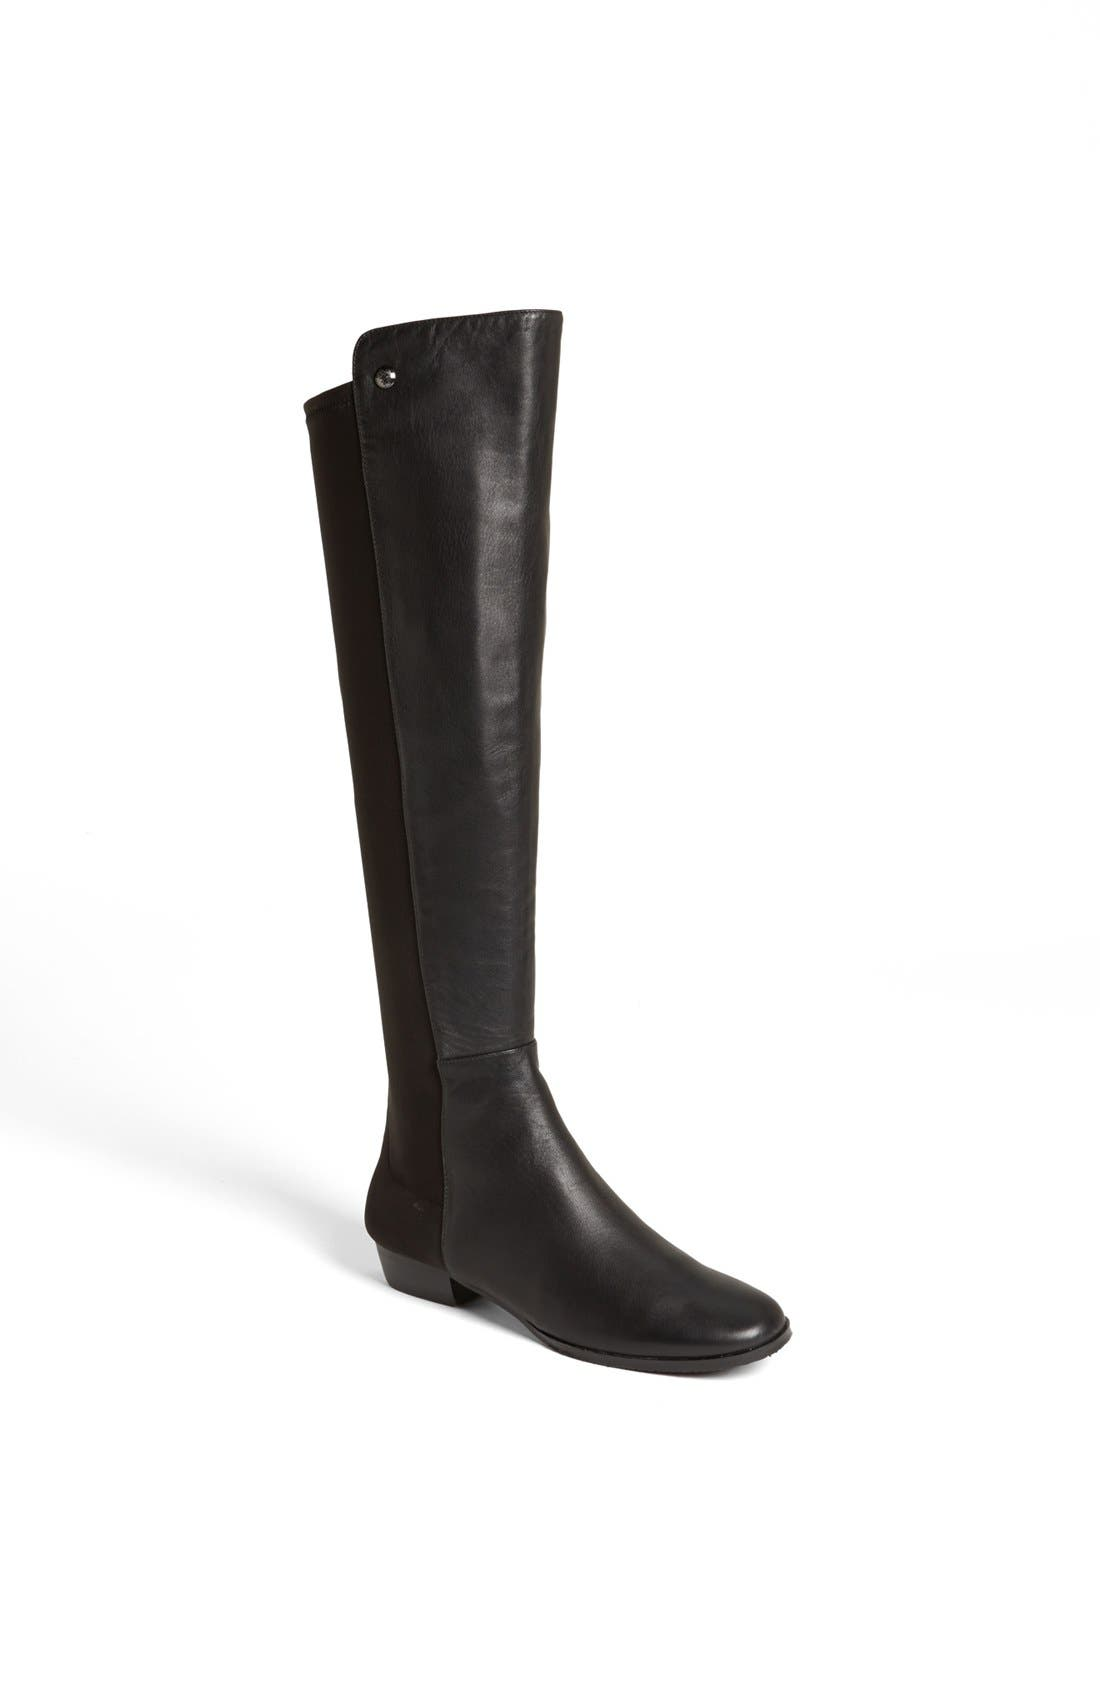 352aab46b31 Vince camuto karita over the knee boot women nordstrom jpg 1660x1783 Vince  camuto tall shaft boots